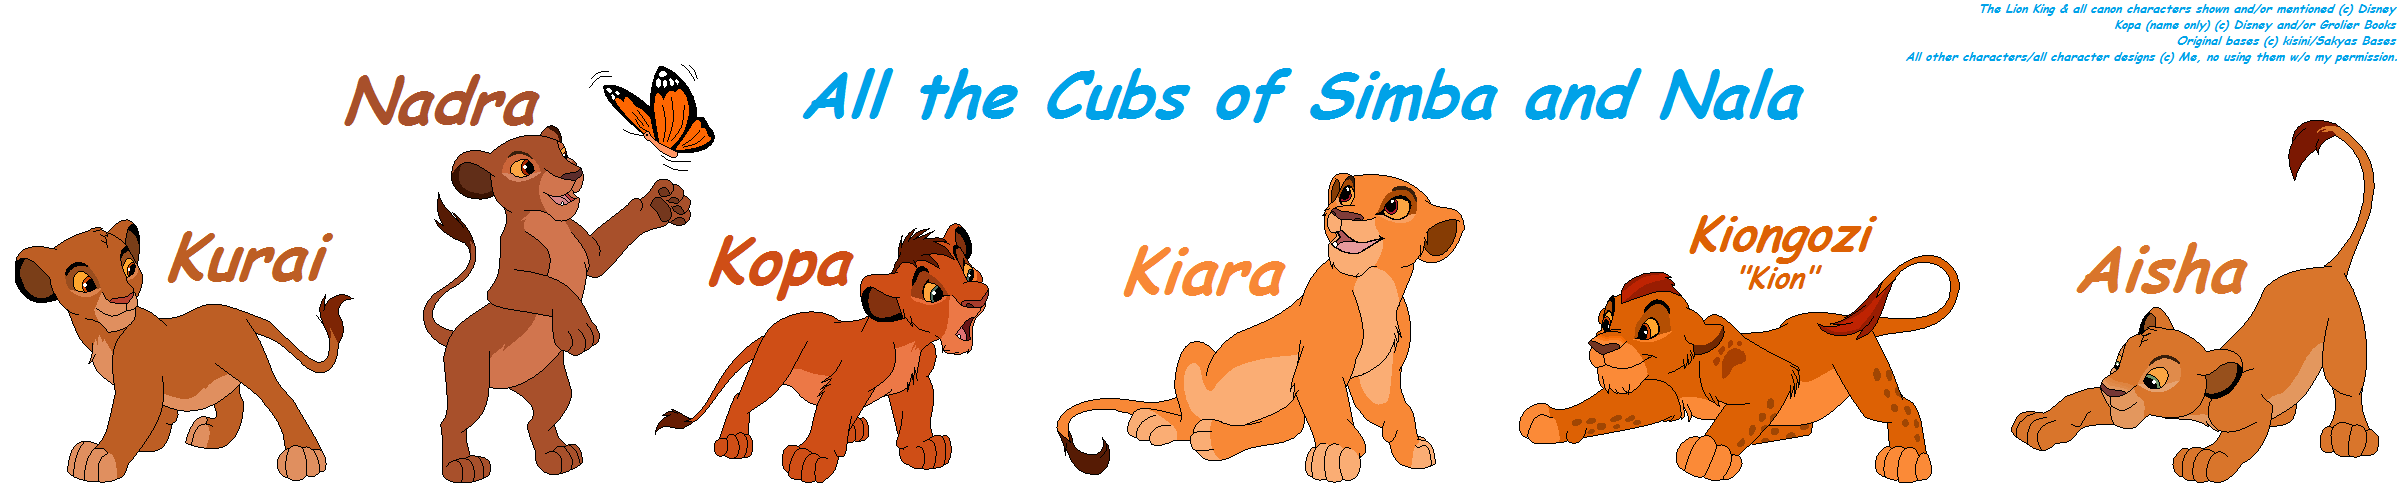 All The Cubs Of Simba And Nala By Pacster13 On Deviantart